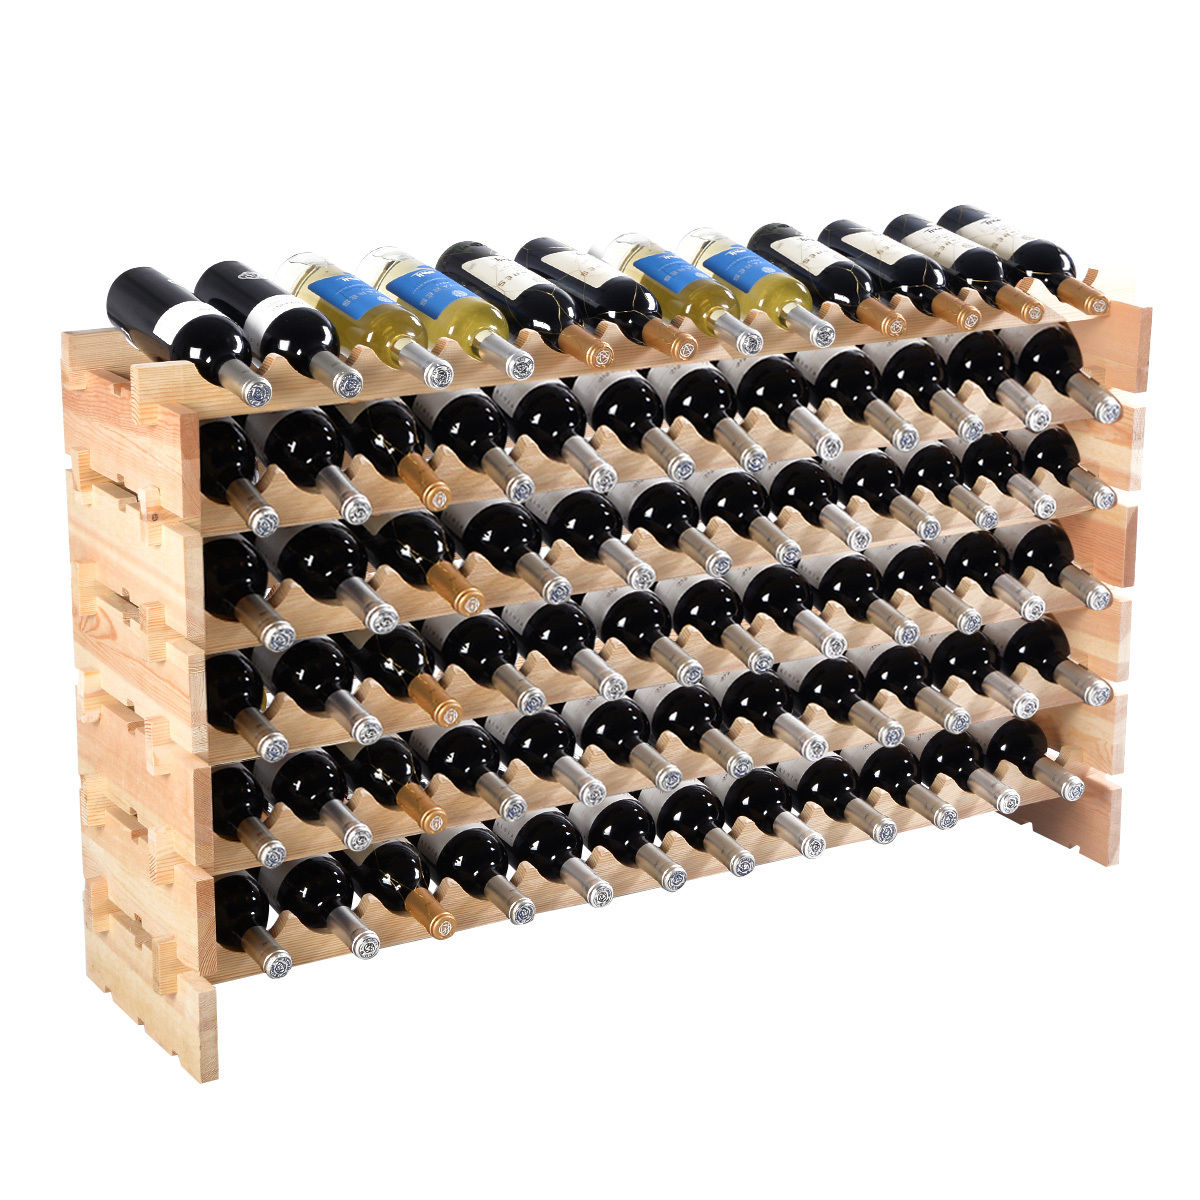 Costway 72 Bottle Wood Wine Rack Stackable Storage 6 Tier Storage Display Shelves by Costway